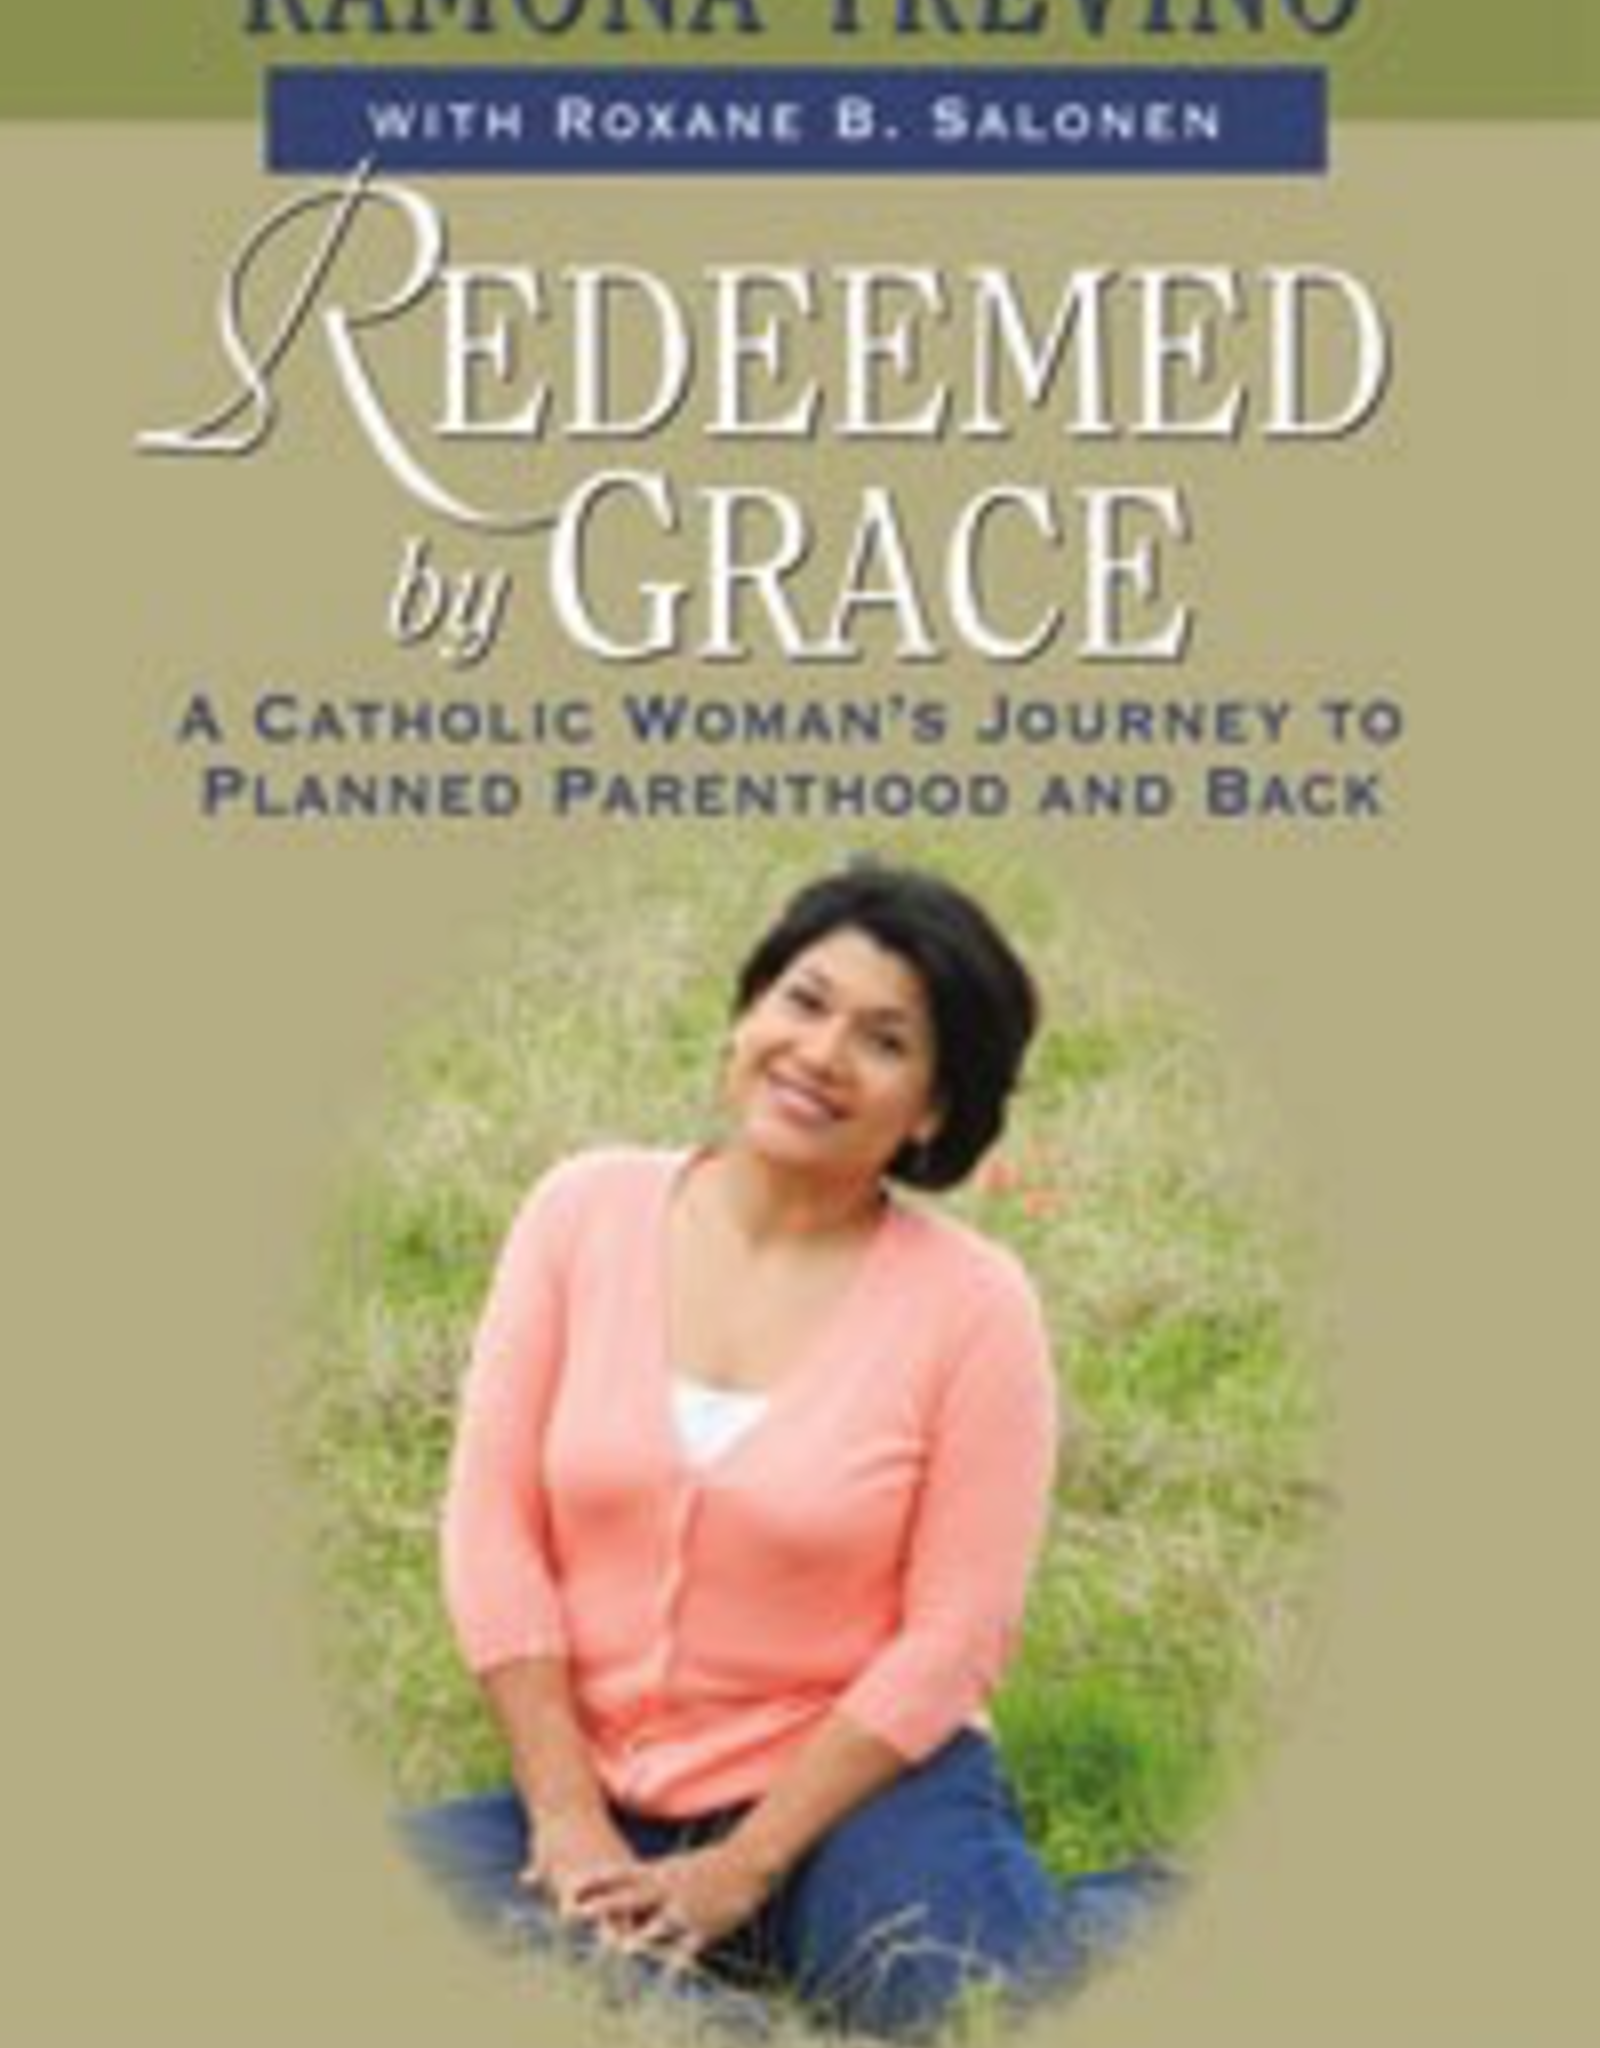 Ignatius Press Redeemed by Grace: A Catholic Woman's Journey to Planned Parenthood and Back, by Ramona Trevino (hardcover)